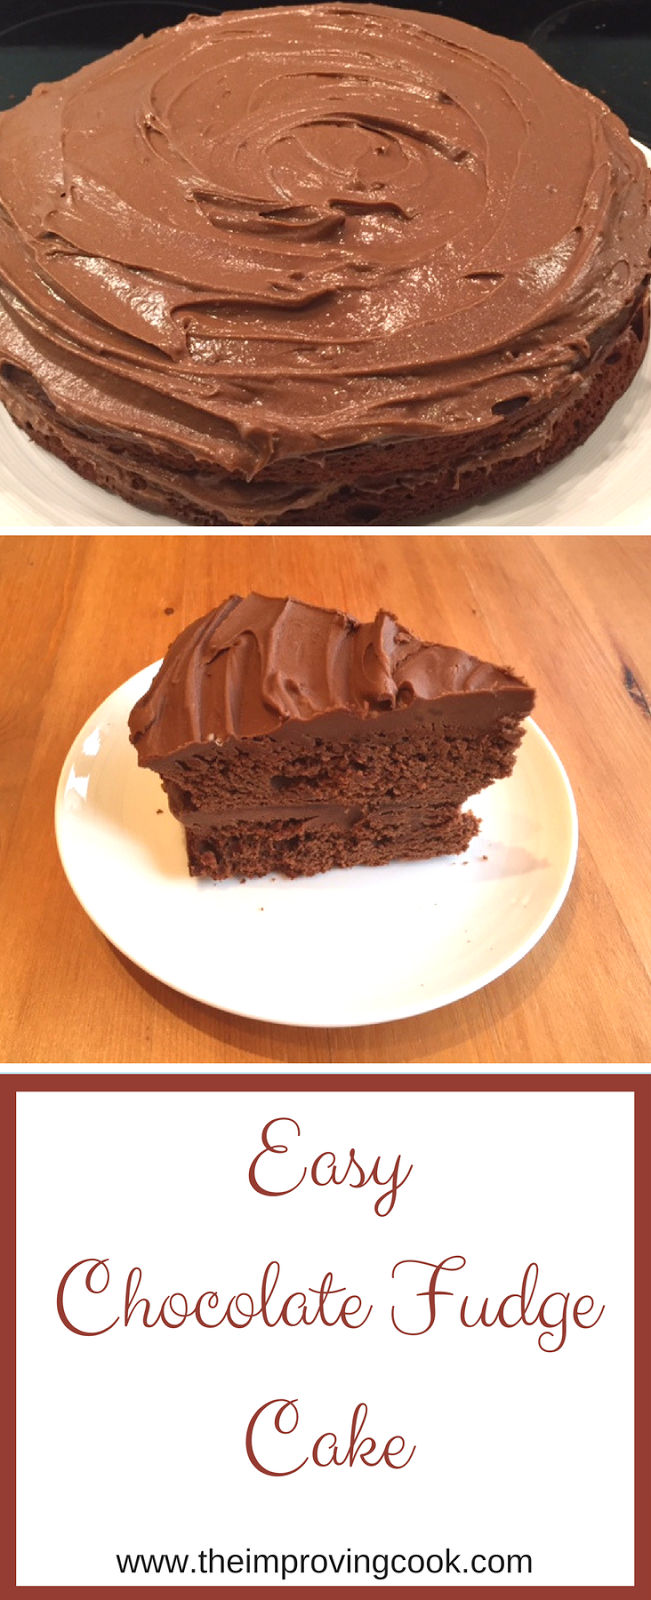 The Improving Cook: Easy Chocolate Fudge Cake